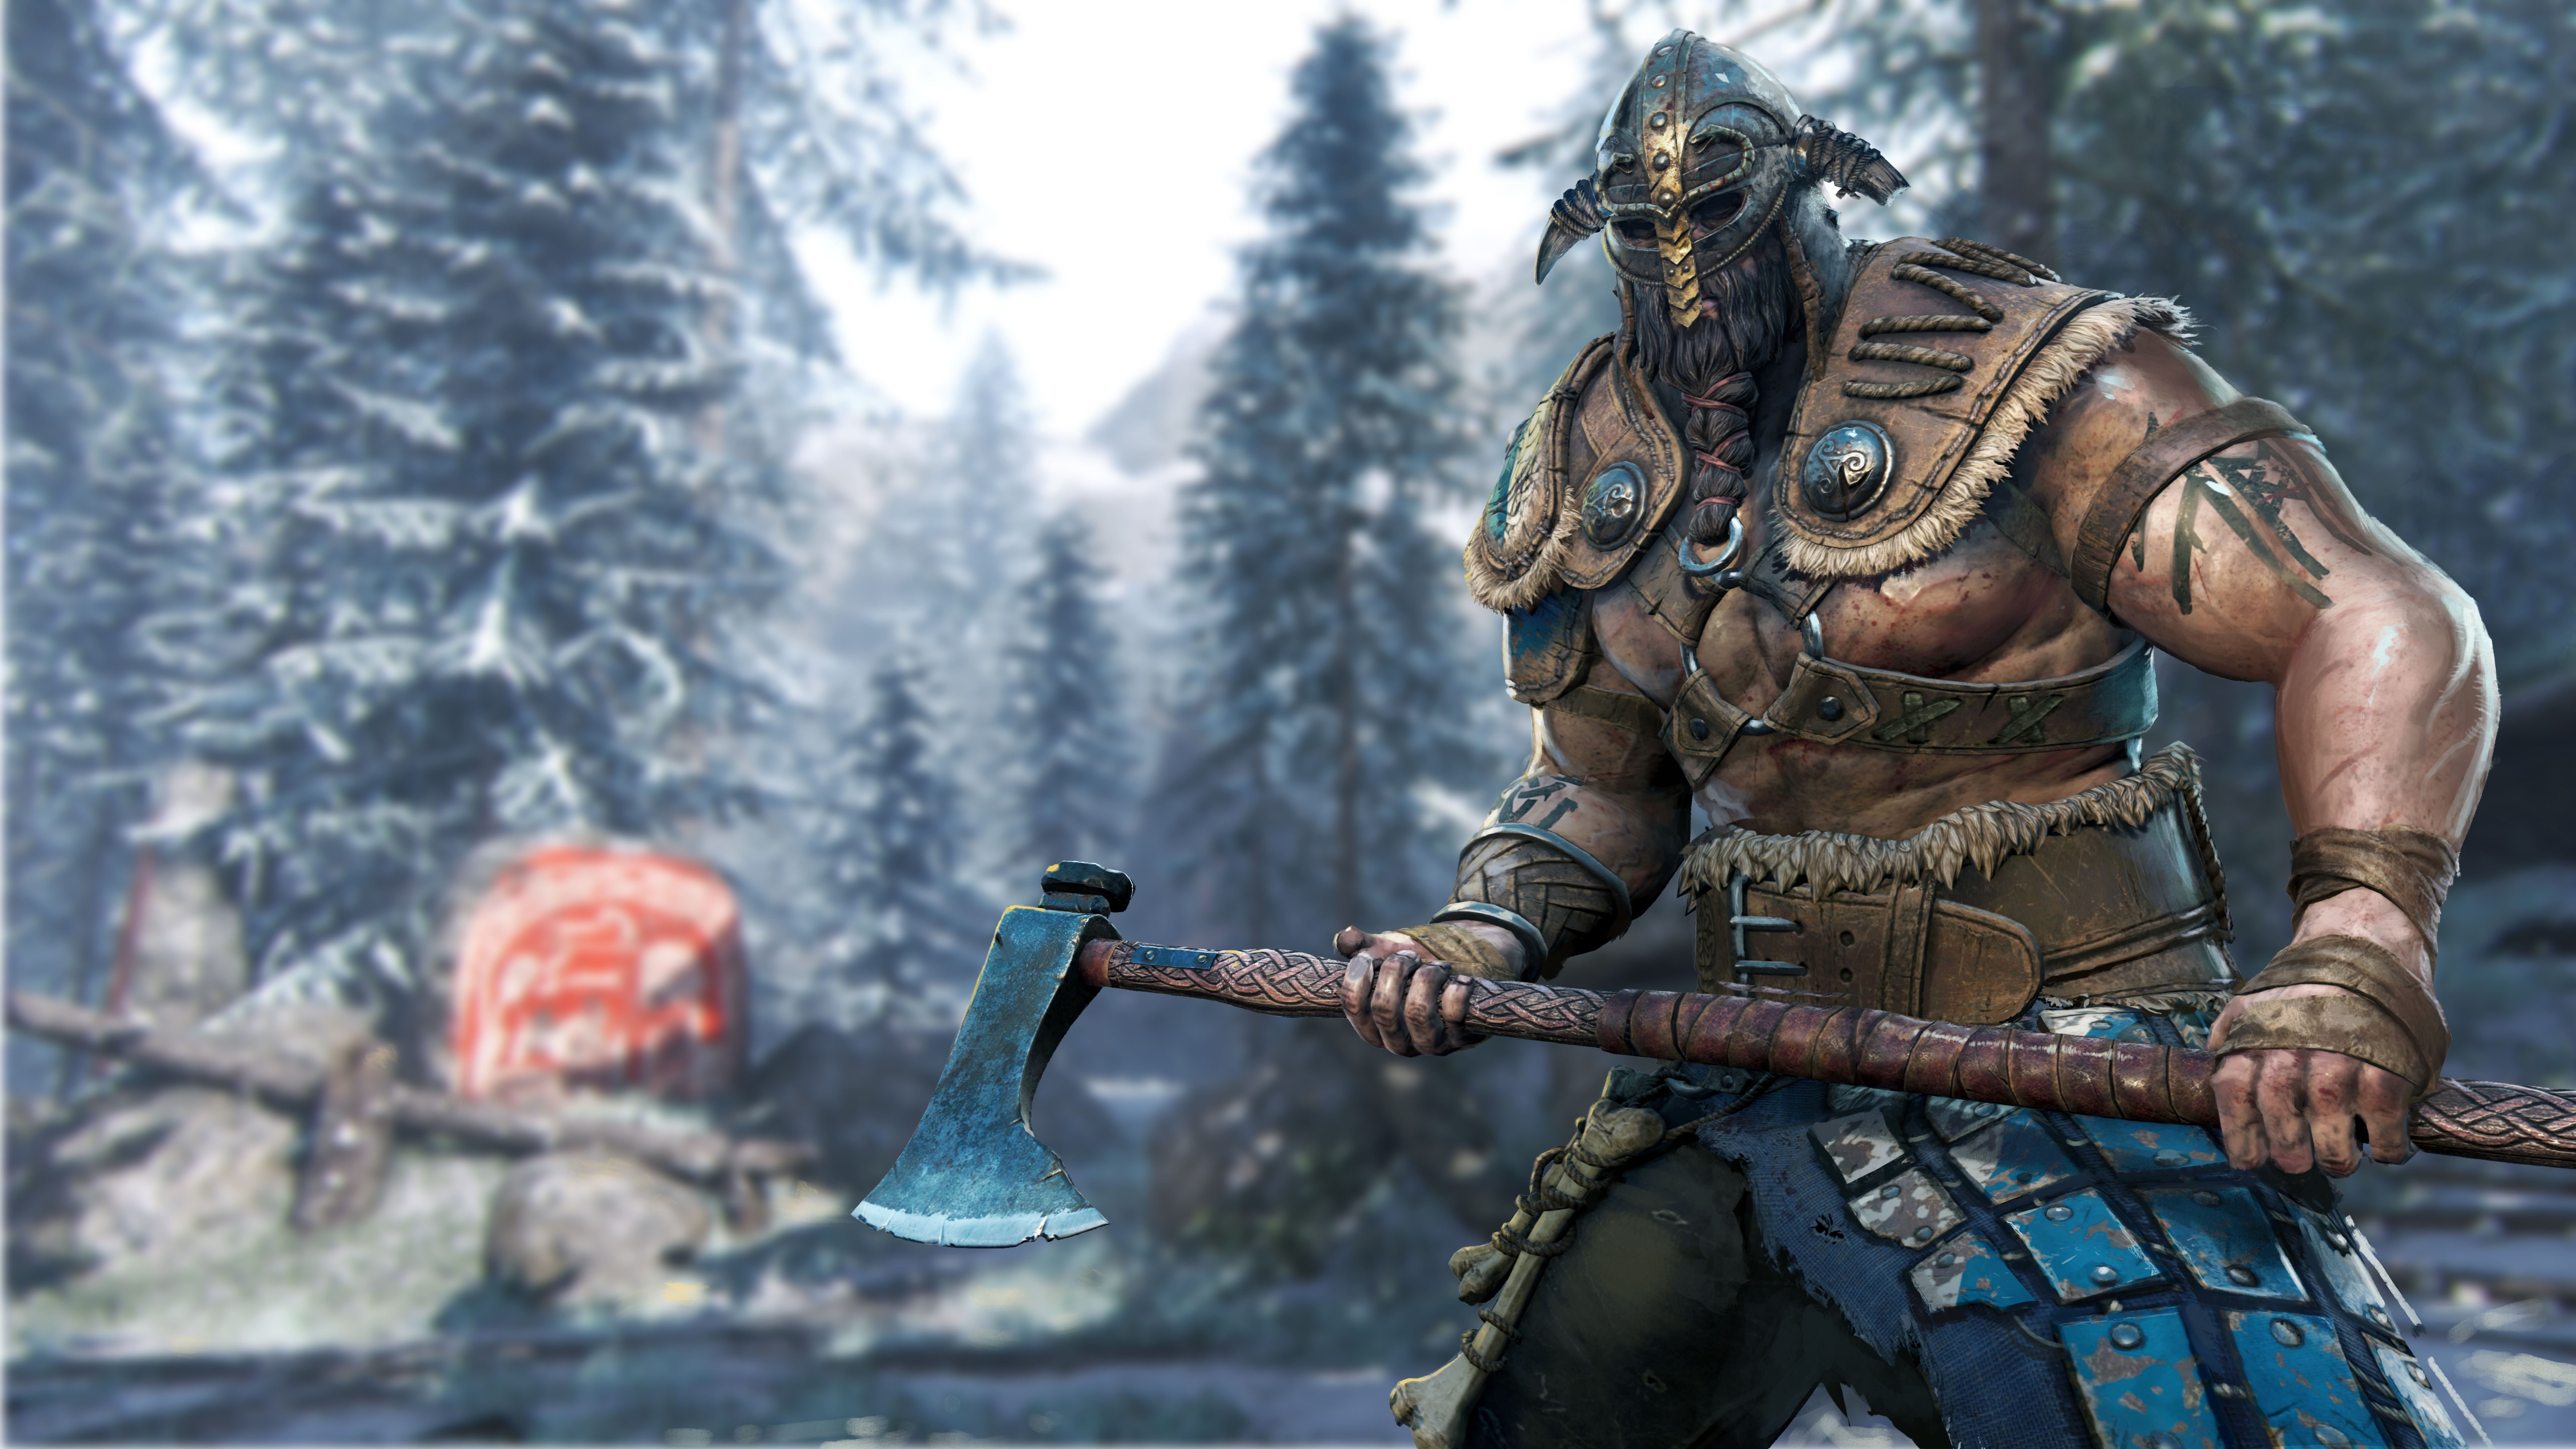 For Honor 8k Hd Games 4k Wallpapers Images Backgrounds Photos